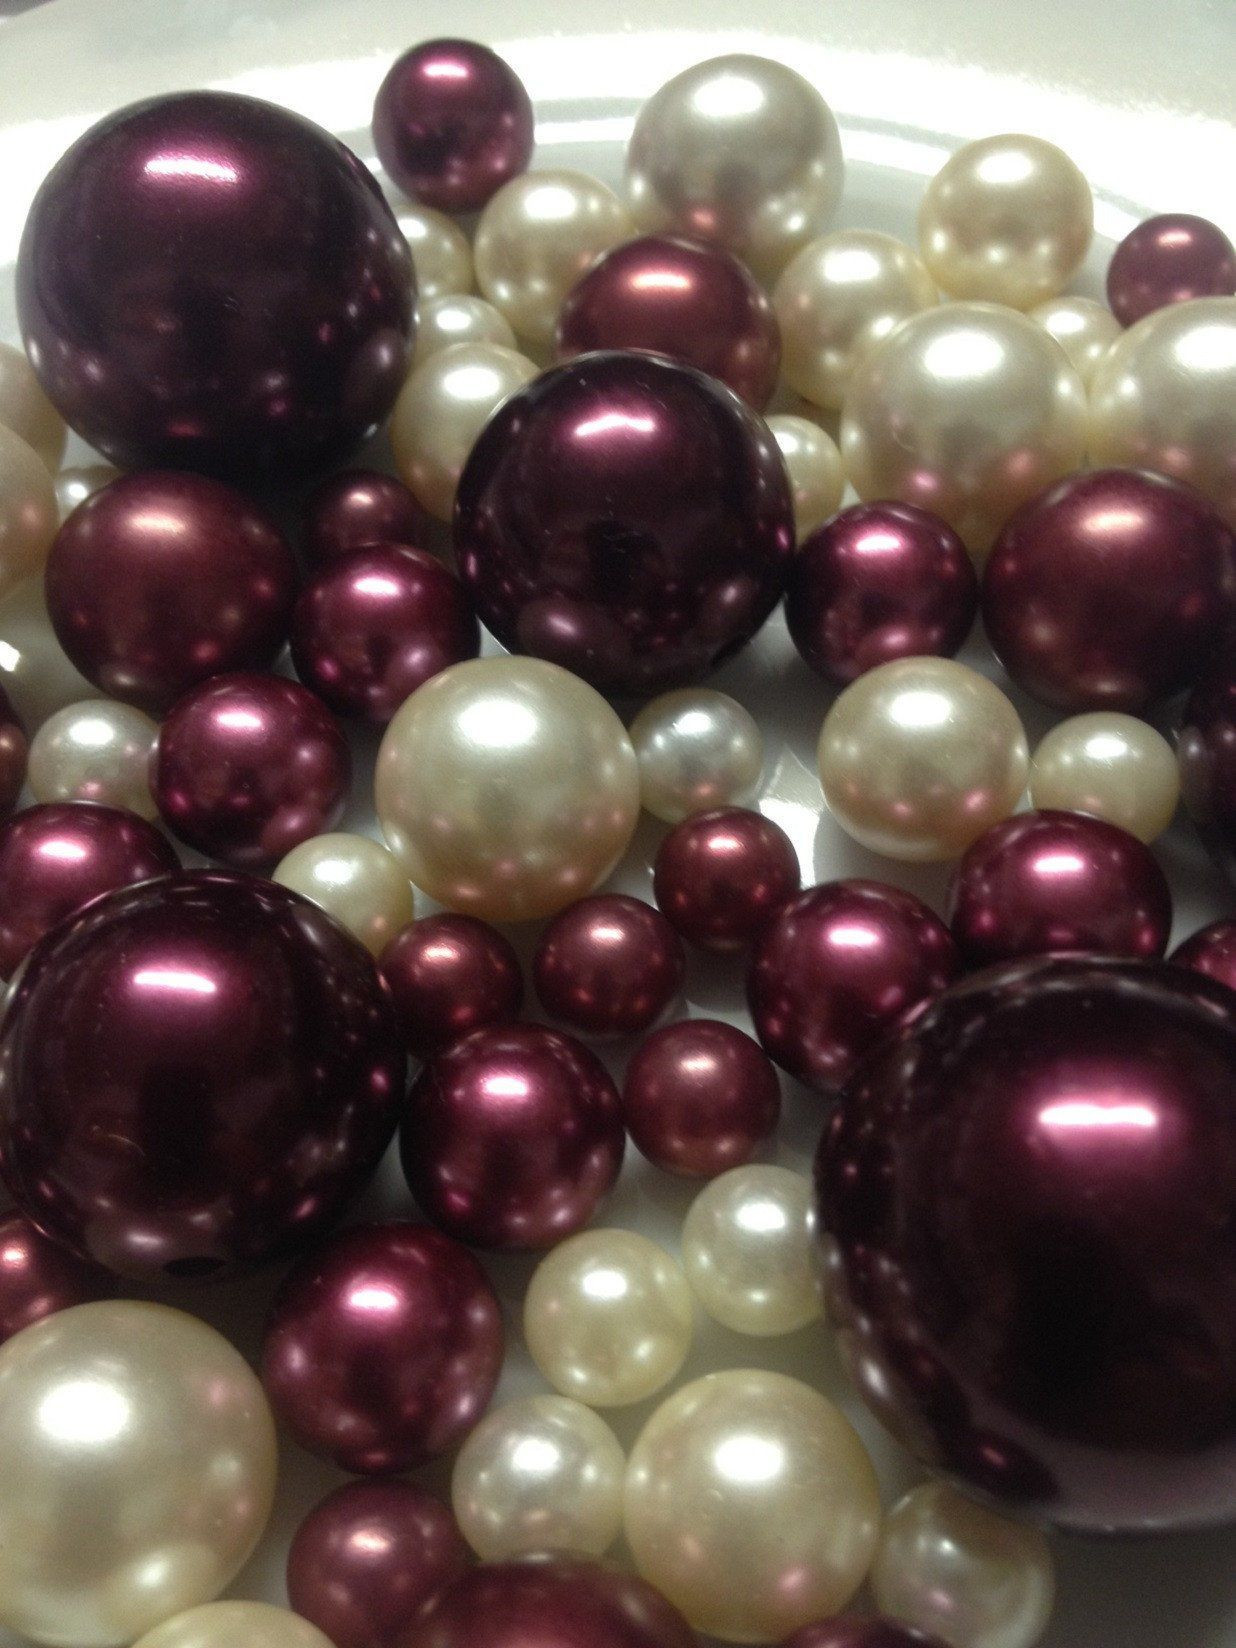 royal blue vase fillers of burgundy and ivory pearls vase filler pearls pearl table scatters with burgundy and ivory pearls vase filler pearls pearl table scatters diy floating pearl